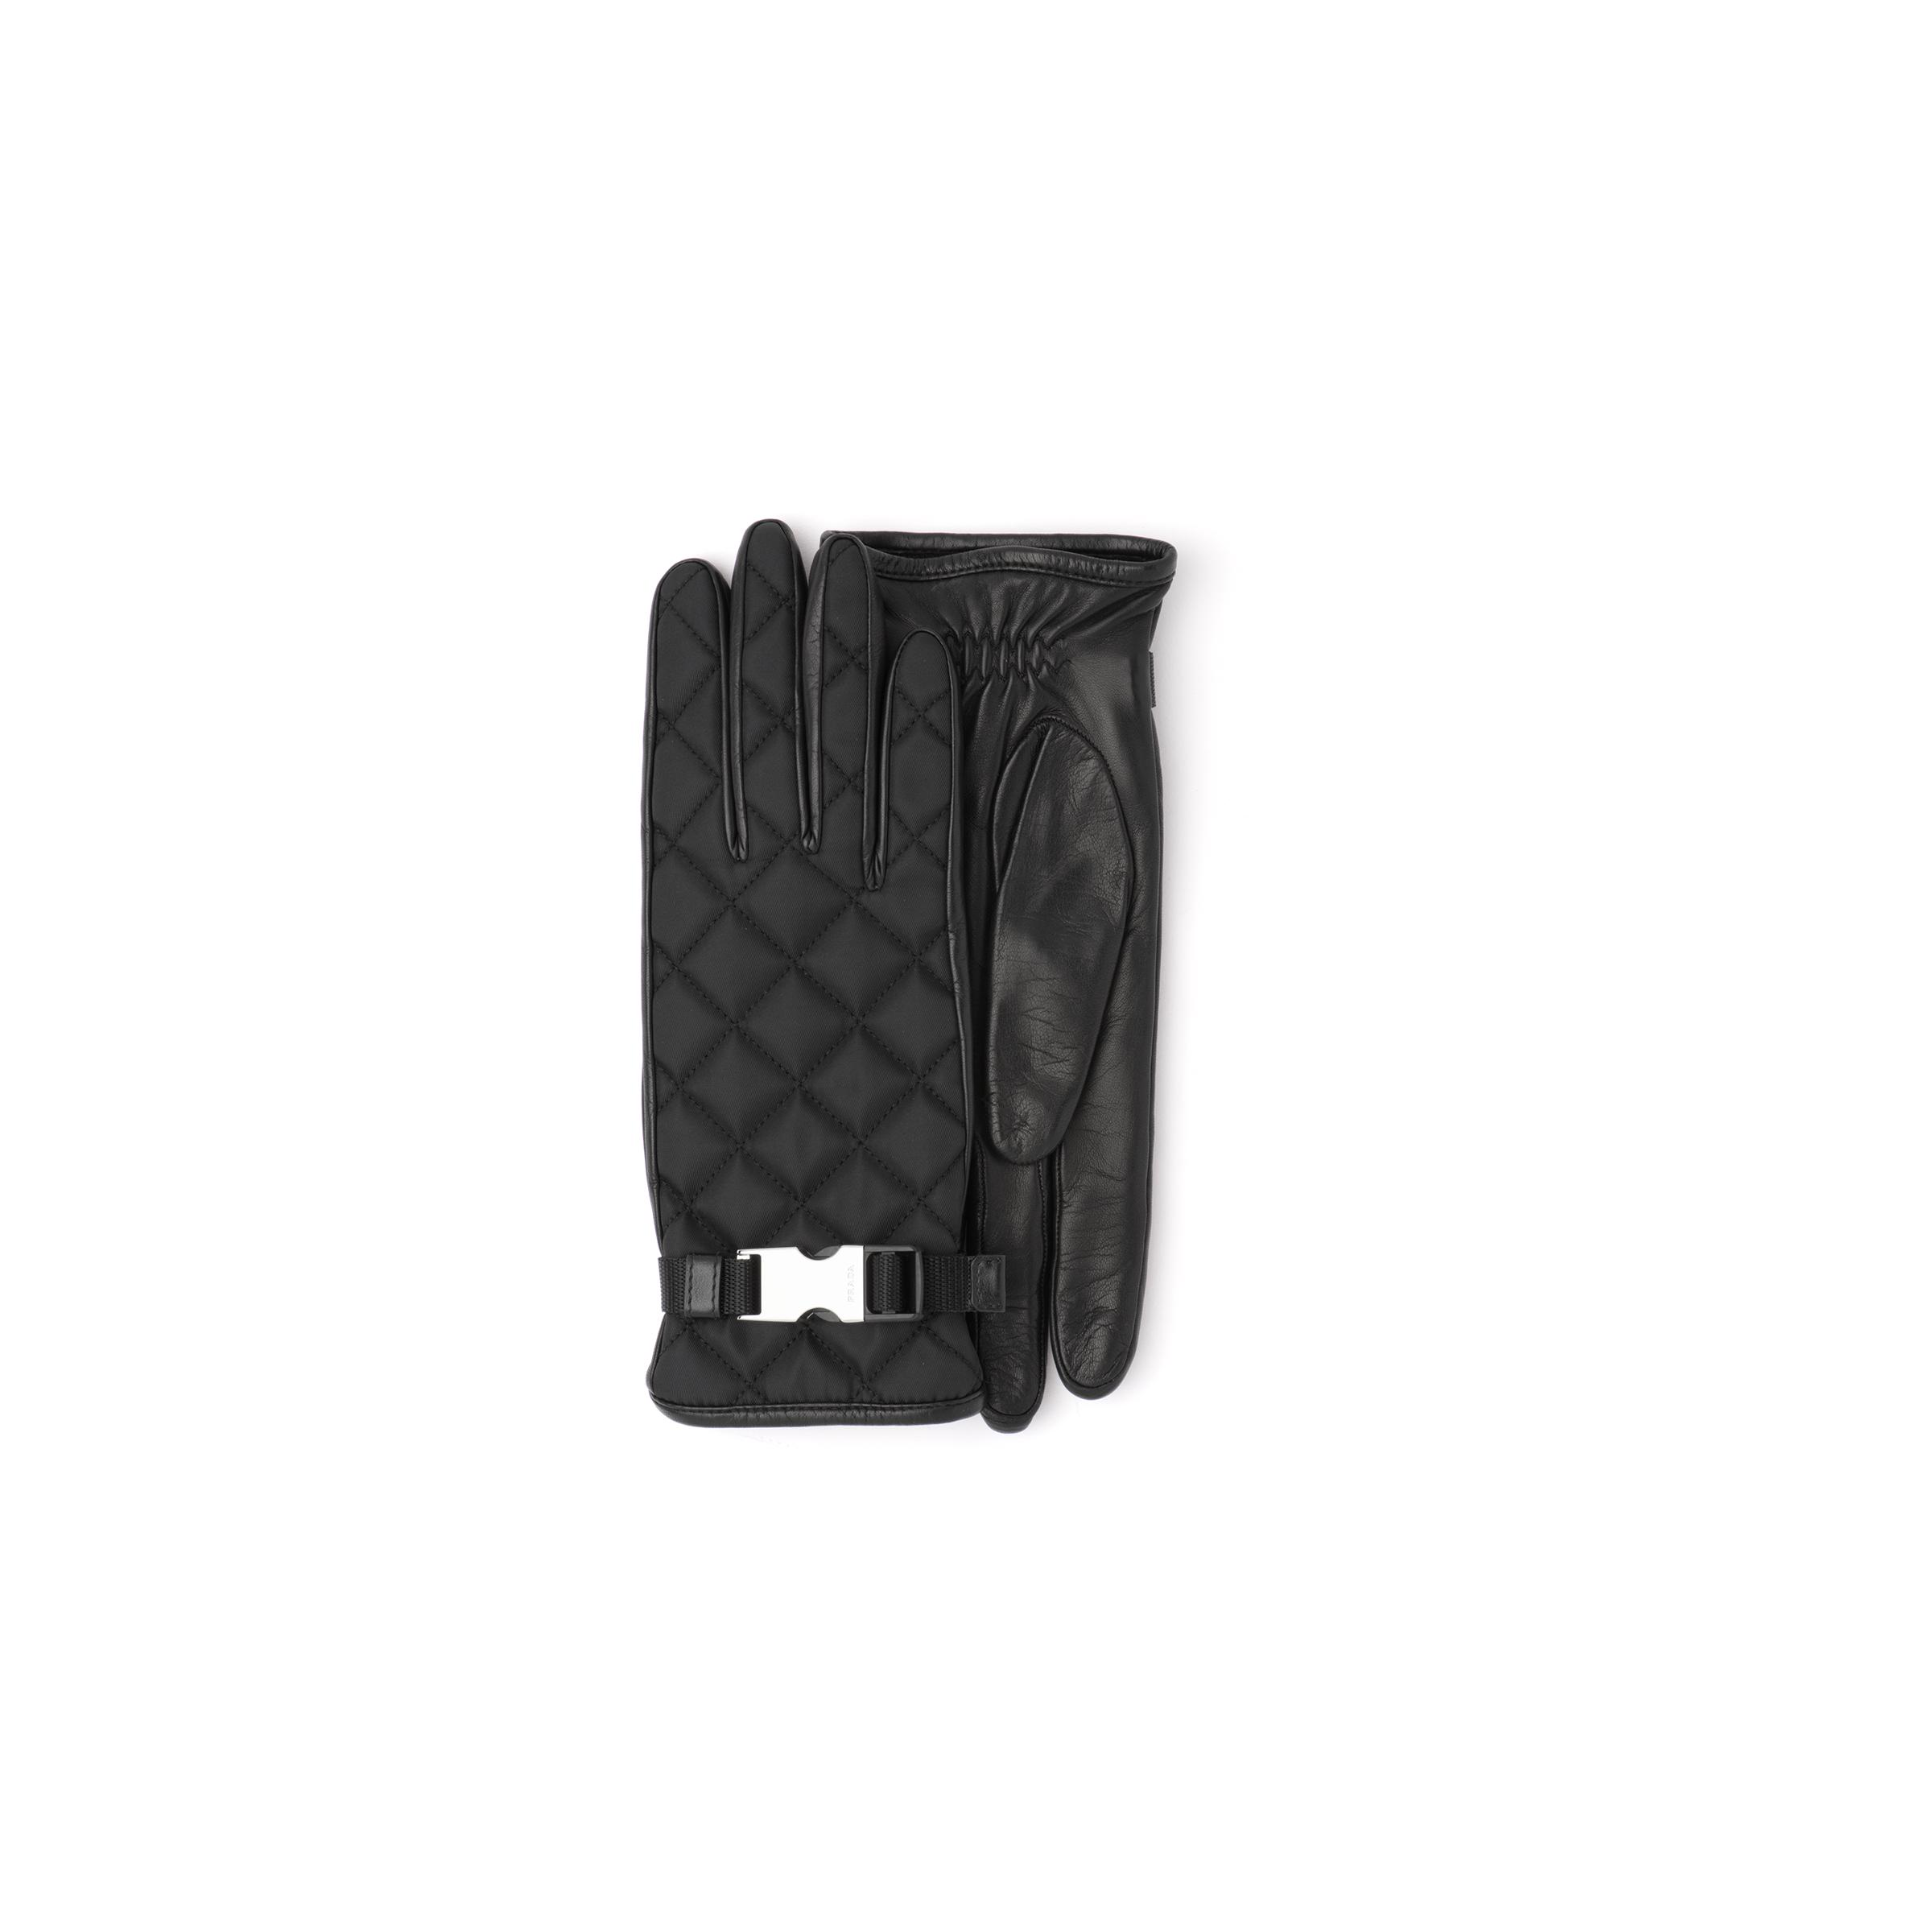 Quilted Nylon And Nappa Leather Gloves Women Black